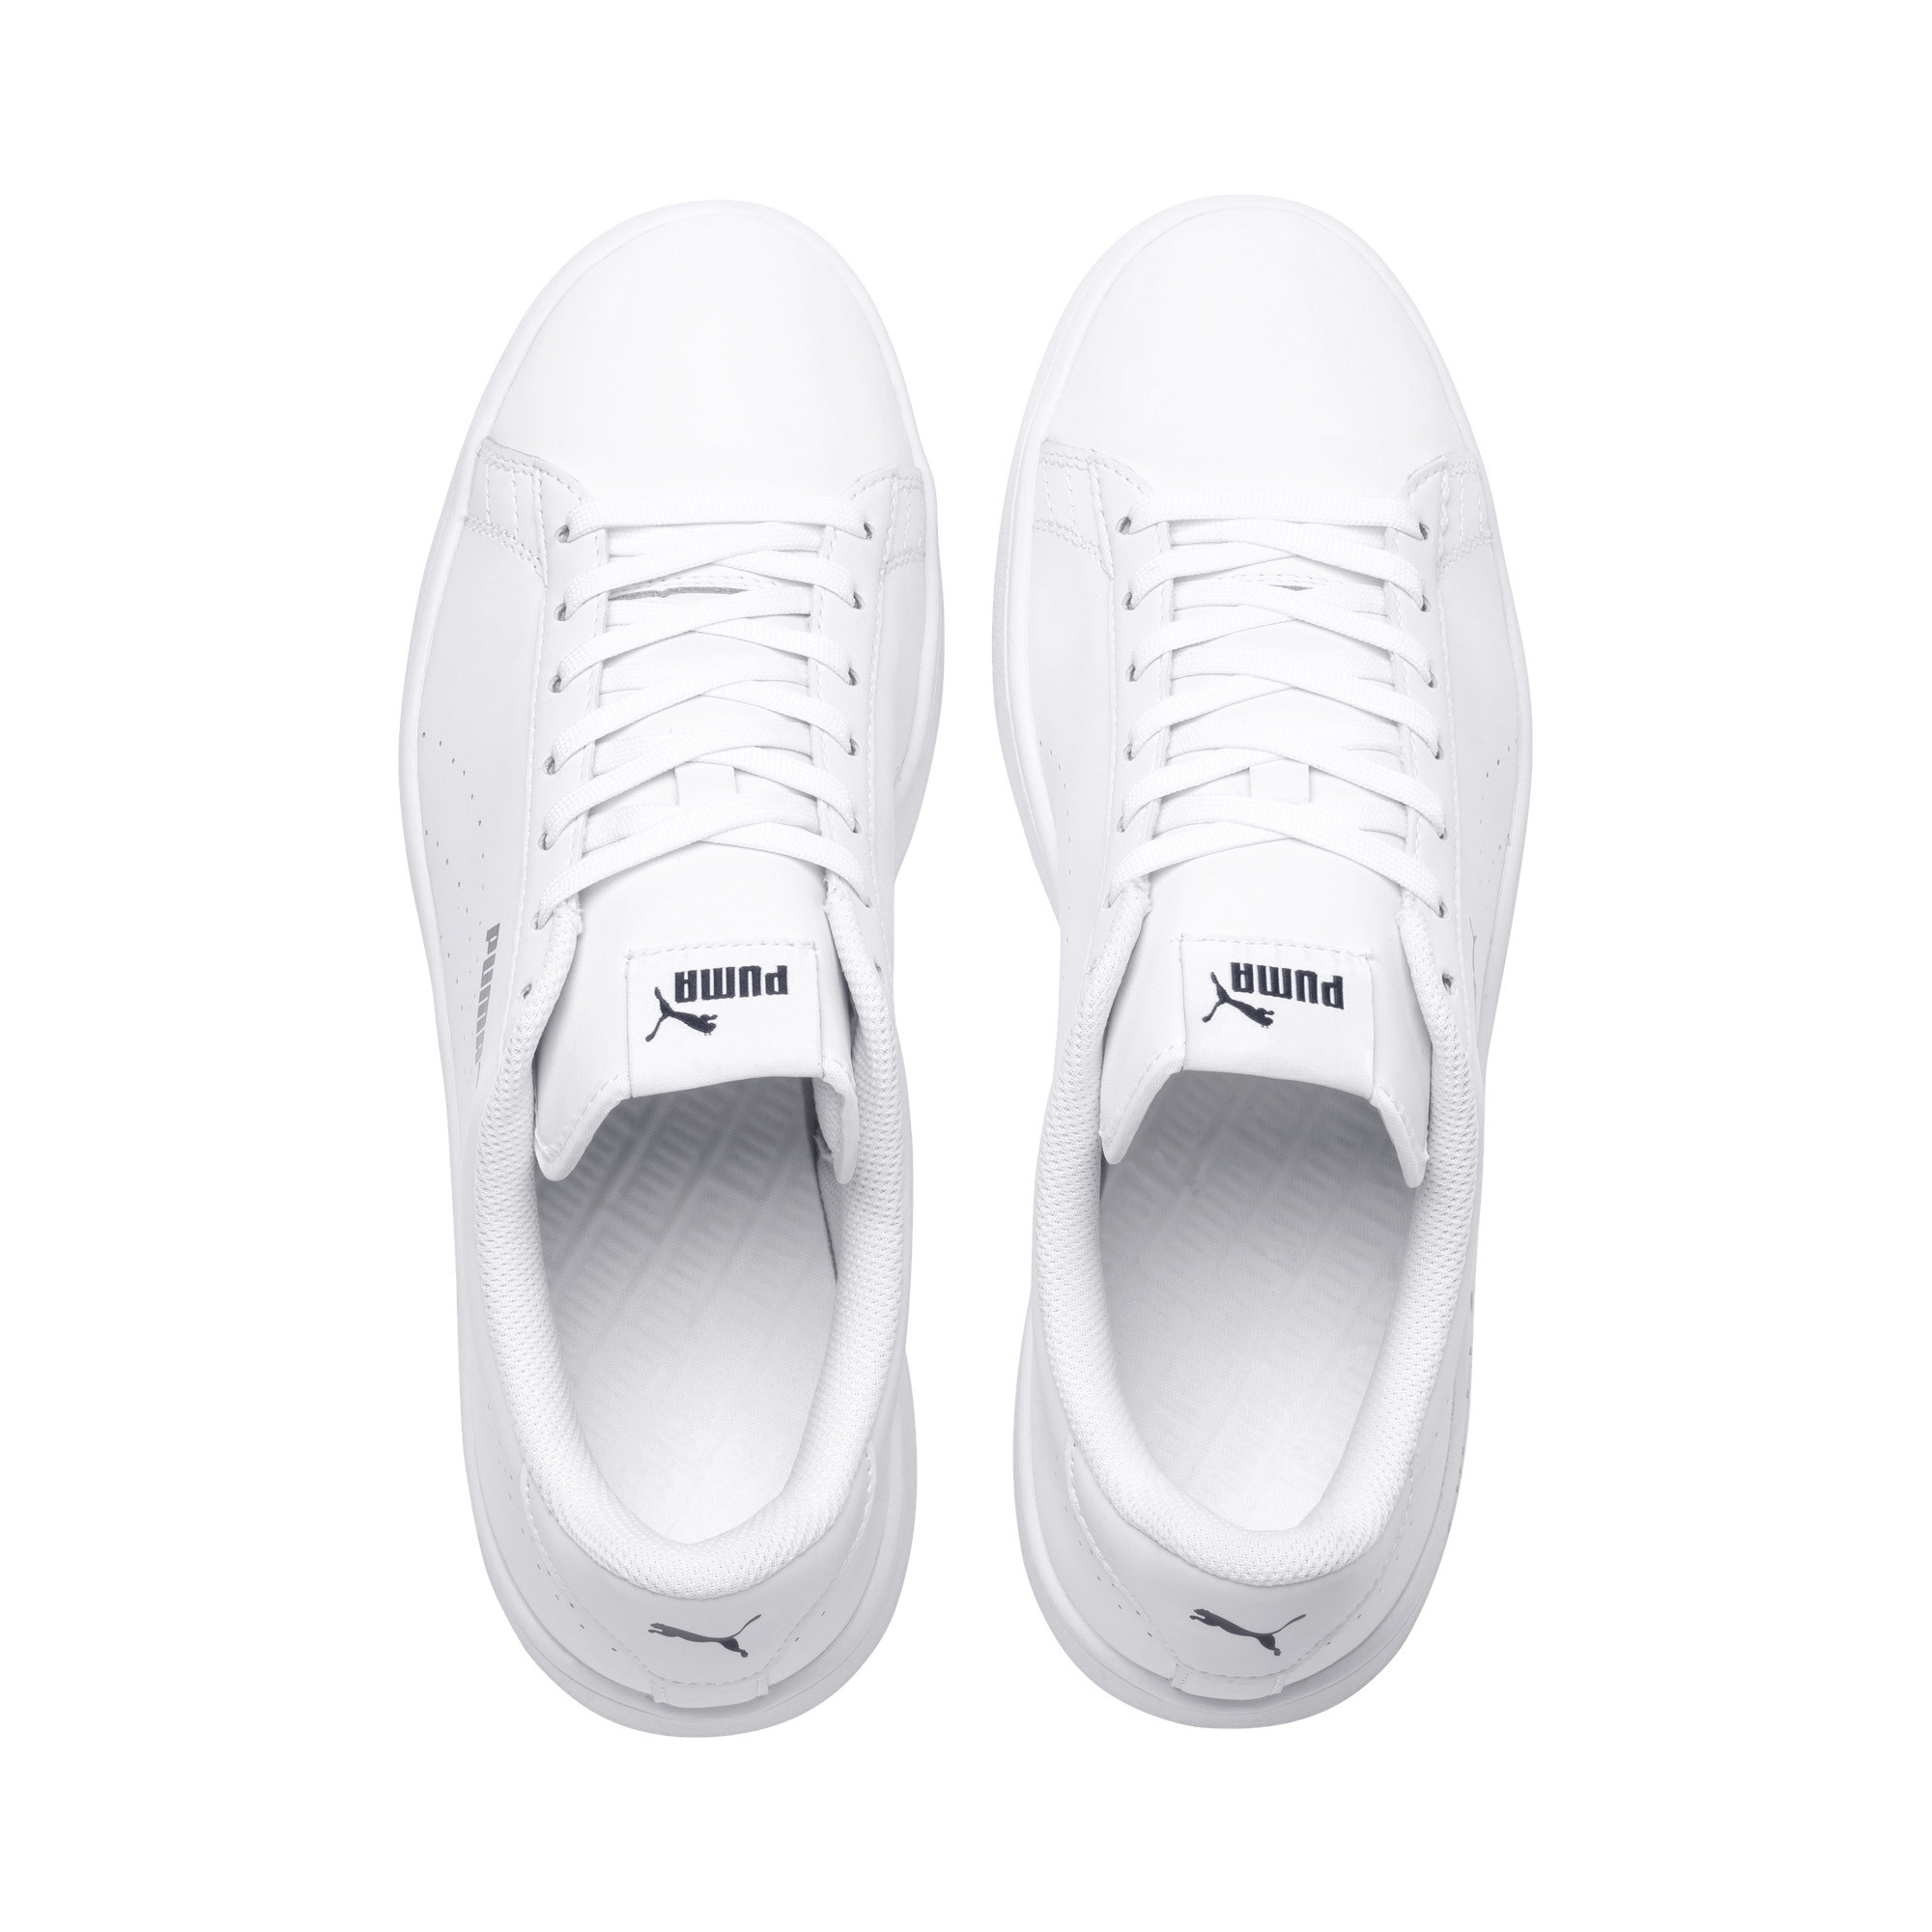 PUMA-PUMA-Smash-v2-Leather-Perf-Sneakers-Men-Shoe-Basics miniatura 7